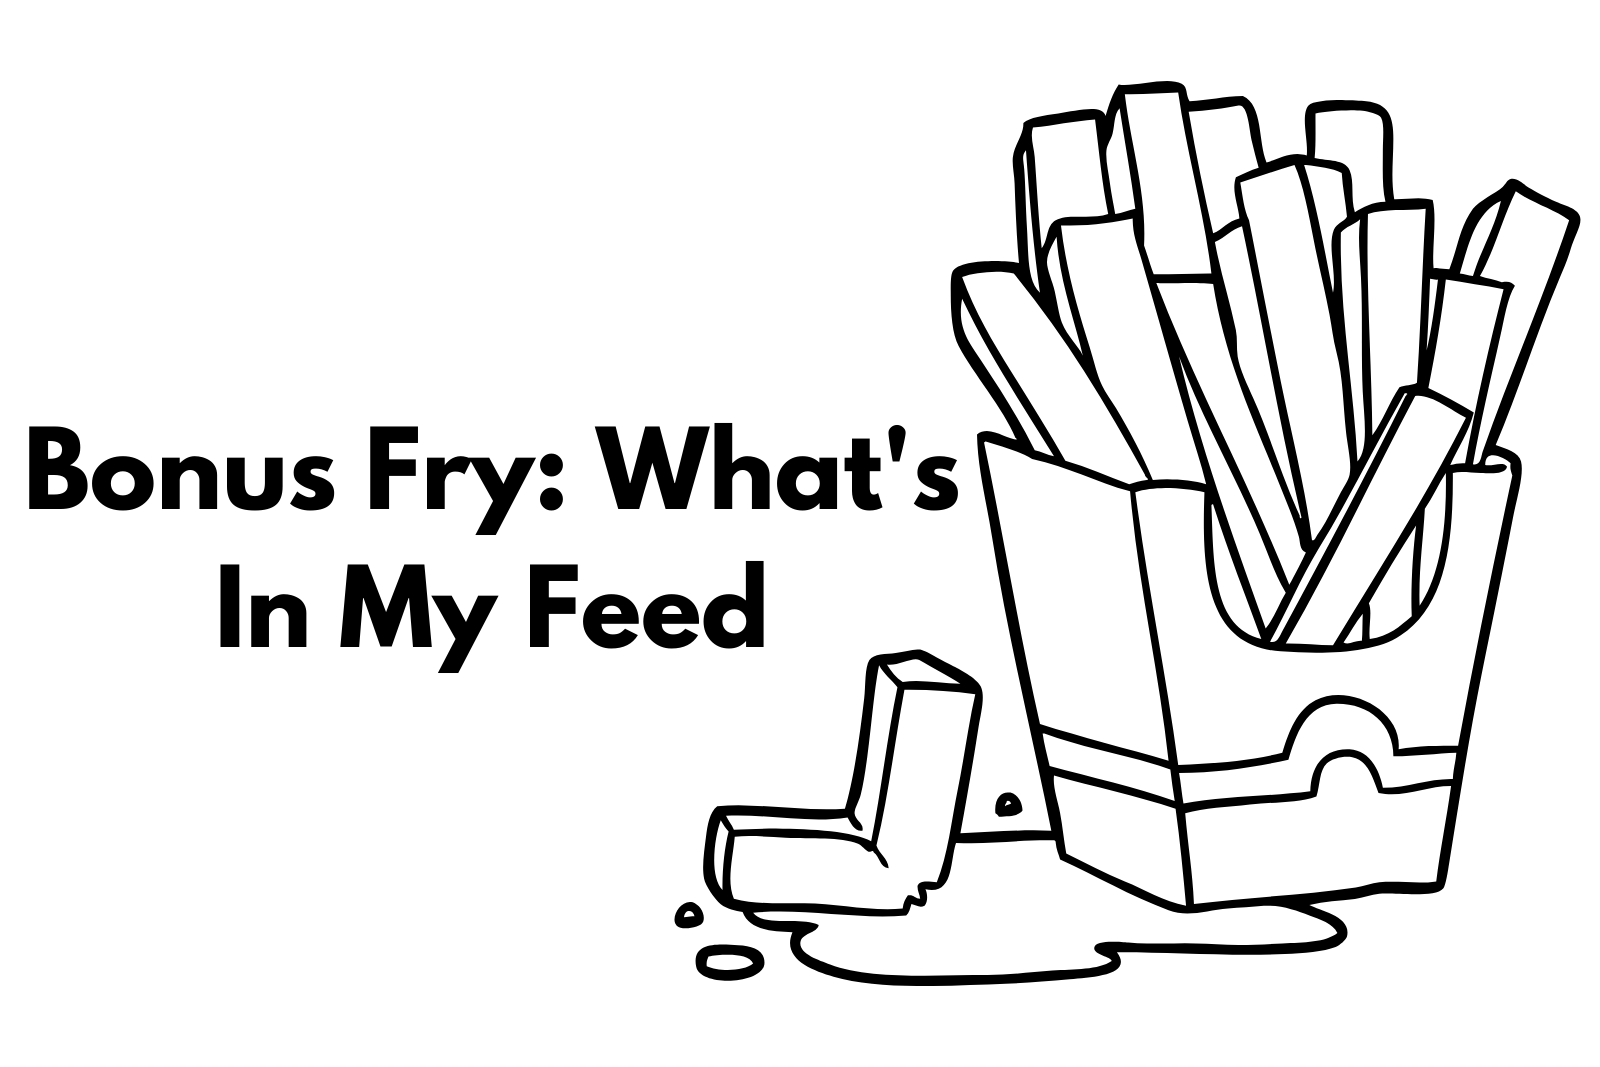 Bonus Fry: What's In My Feed